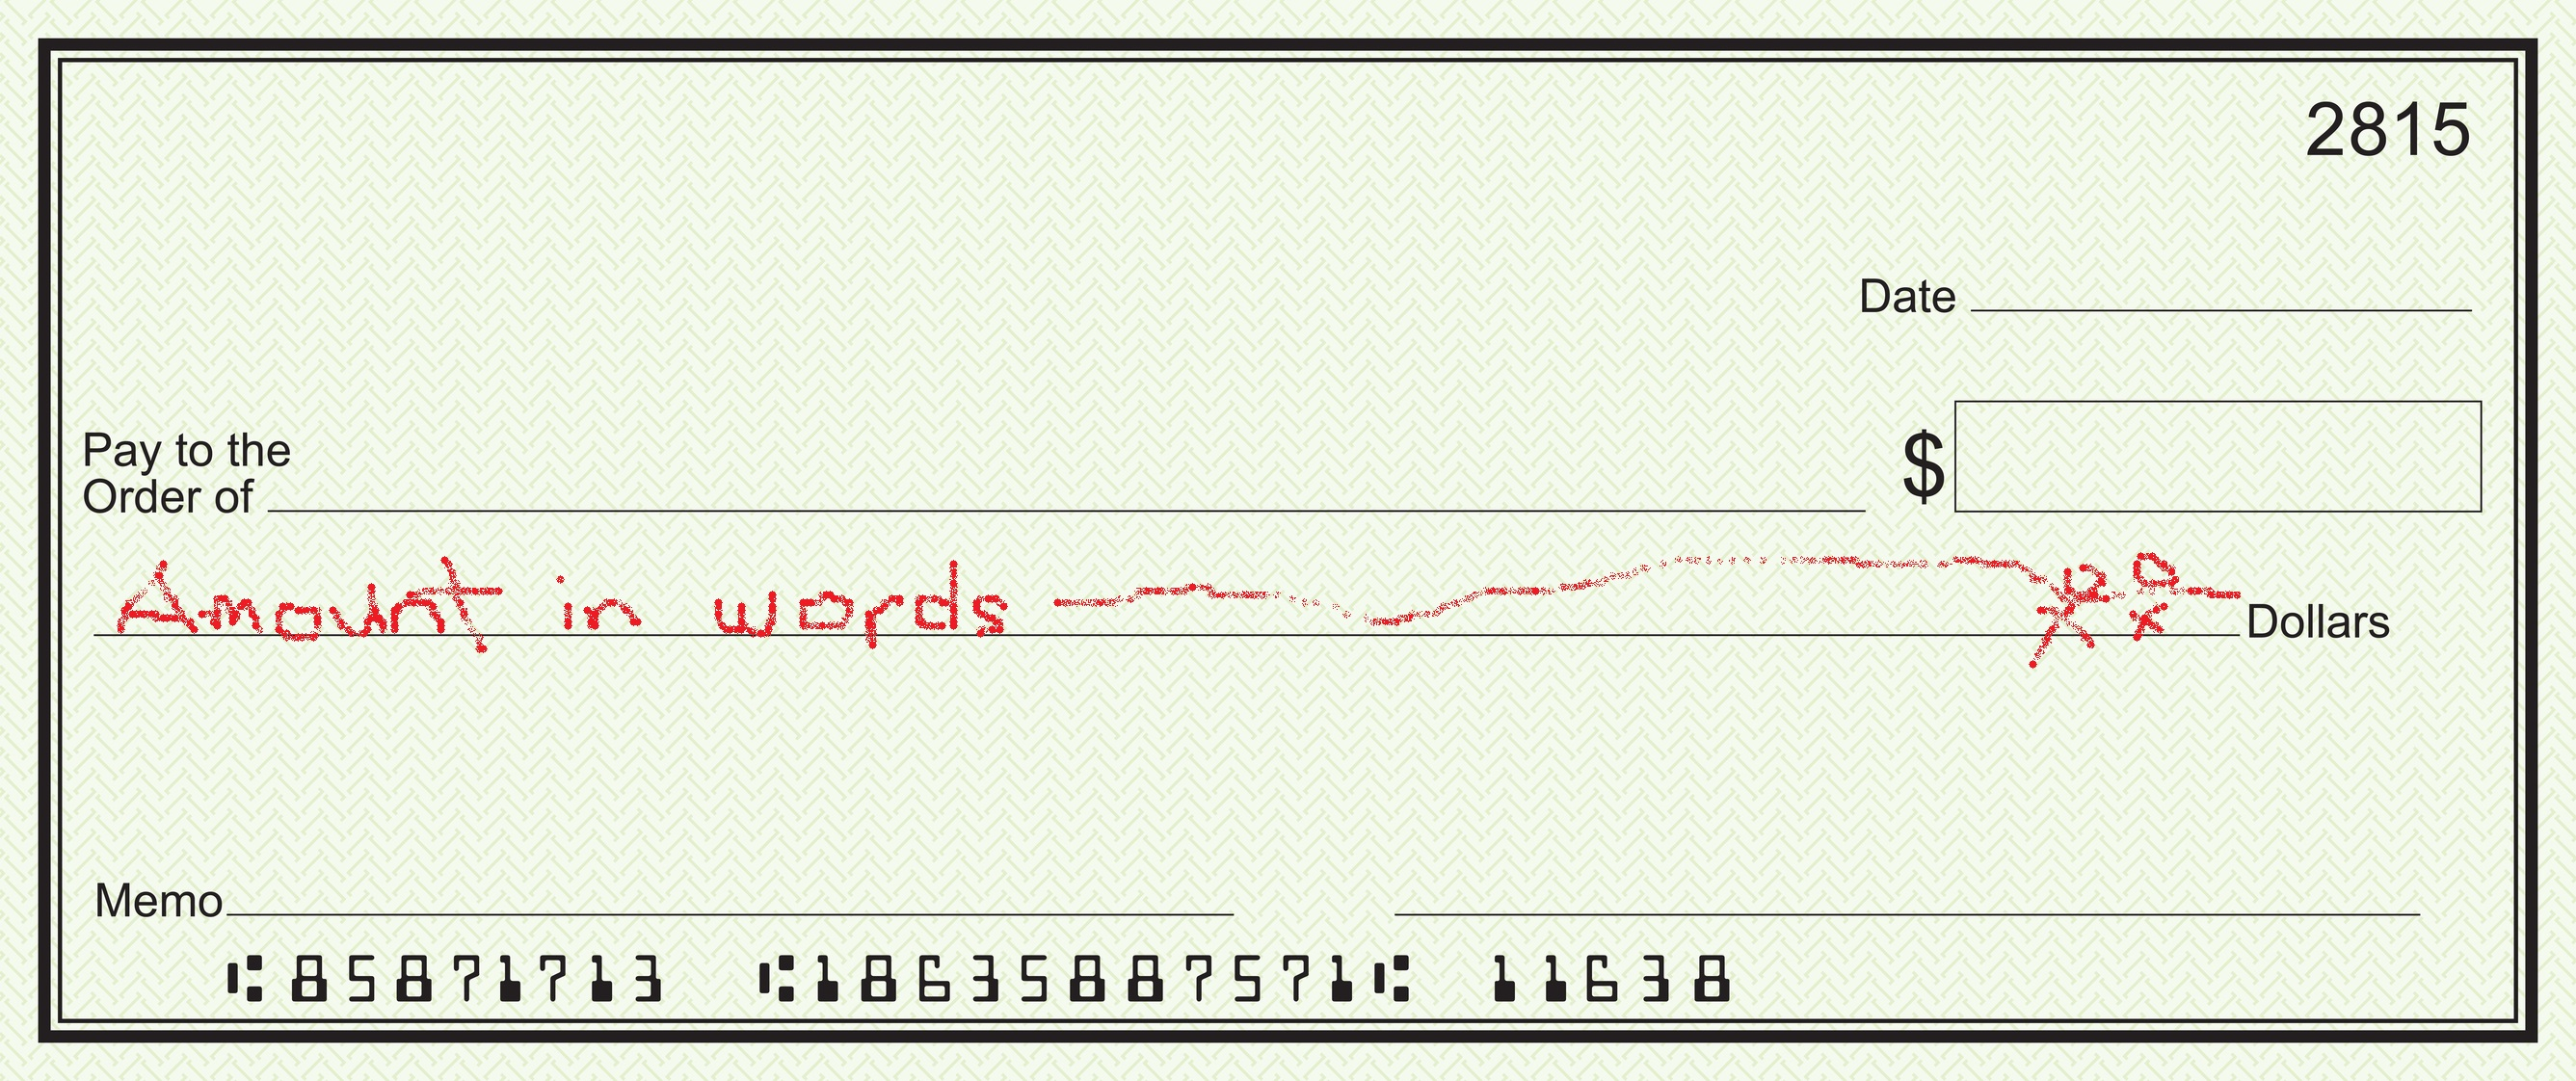 how to write amount in words in cheque definition